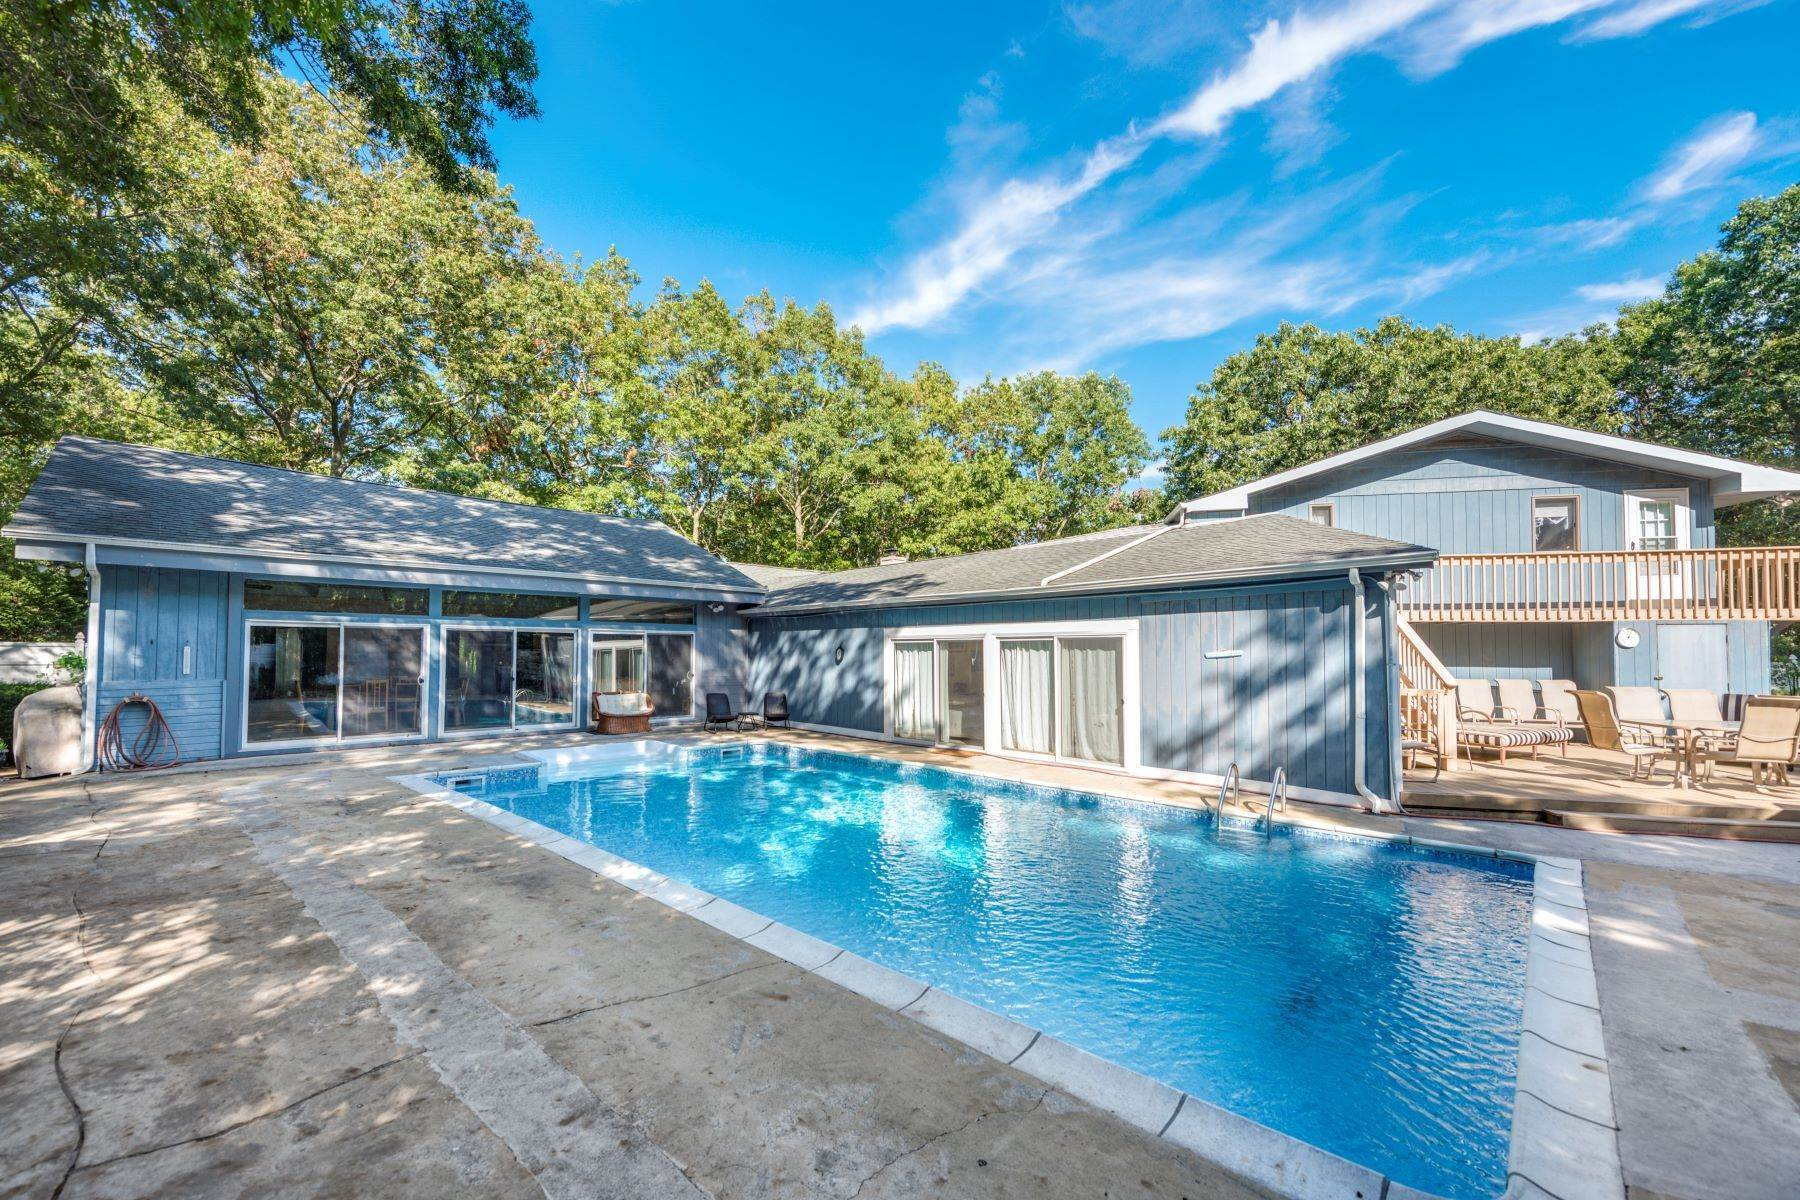 Single Family Homes for Sale at 8 Delacey Ave, E. Quogue, Ny, 11942 8 Delacey Ave East Quogue, New York 11942 United States